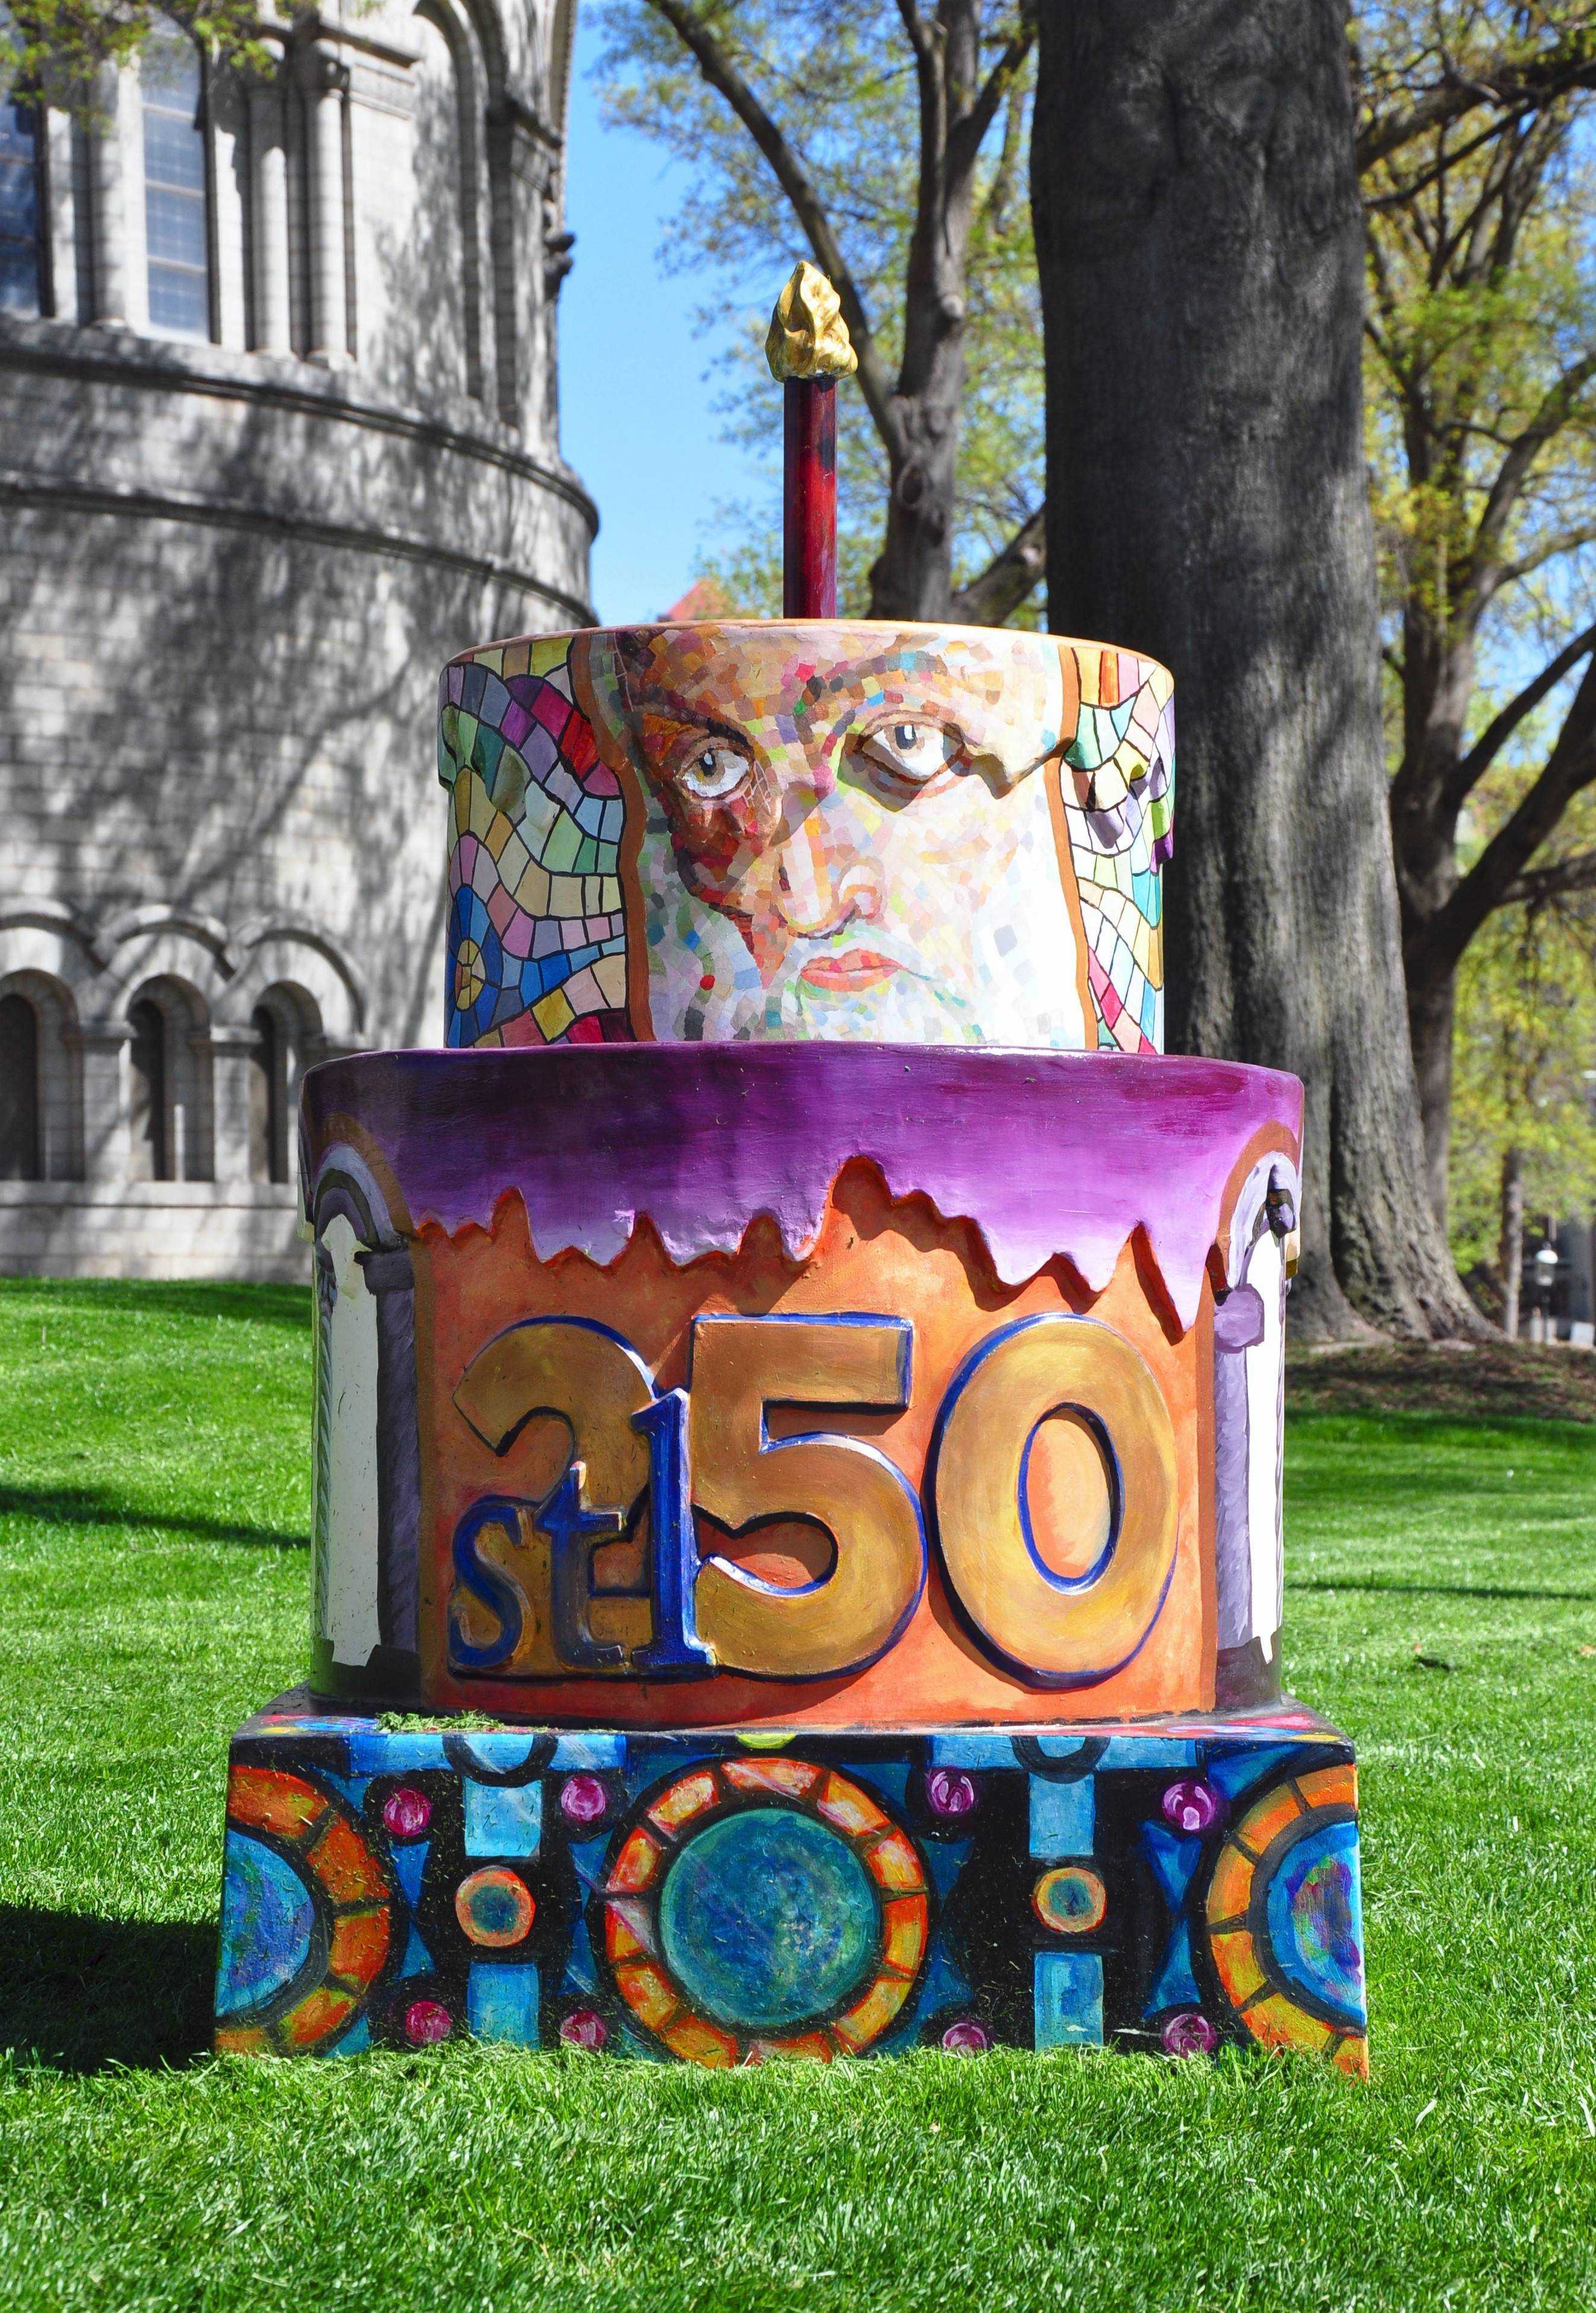 To mark the 250th anniversary of the founding of St. Louis, 250 fiberglass cakes have been placed in noteworthy locations around the region.